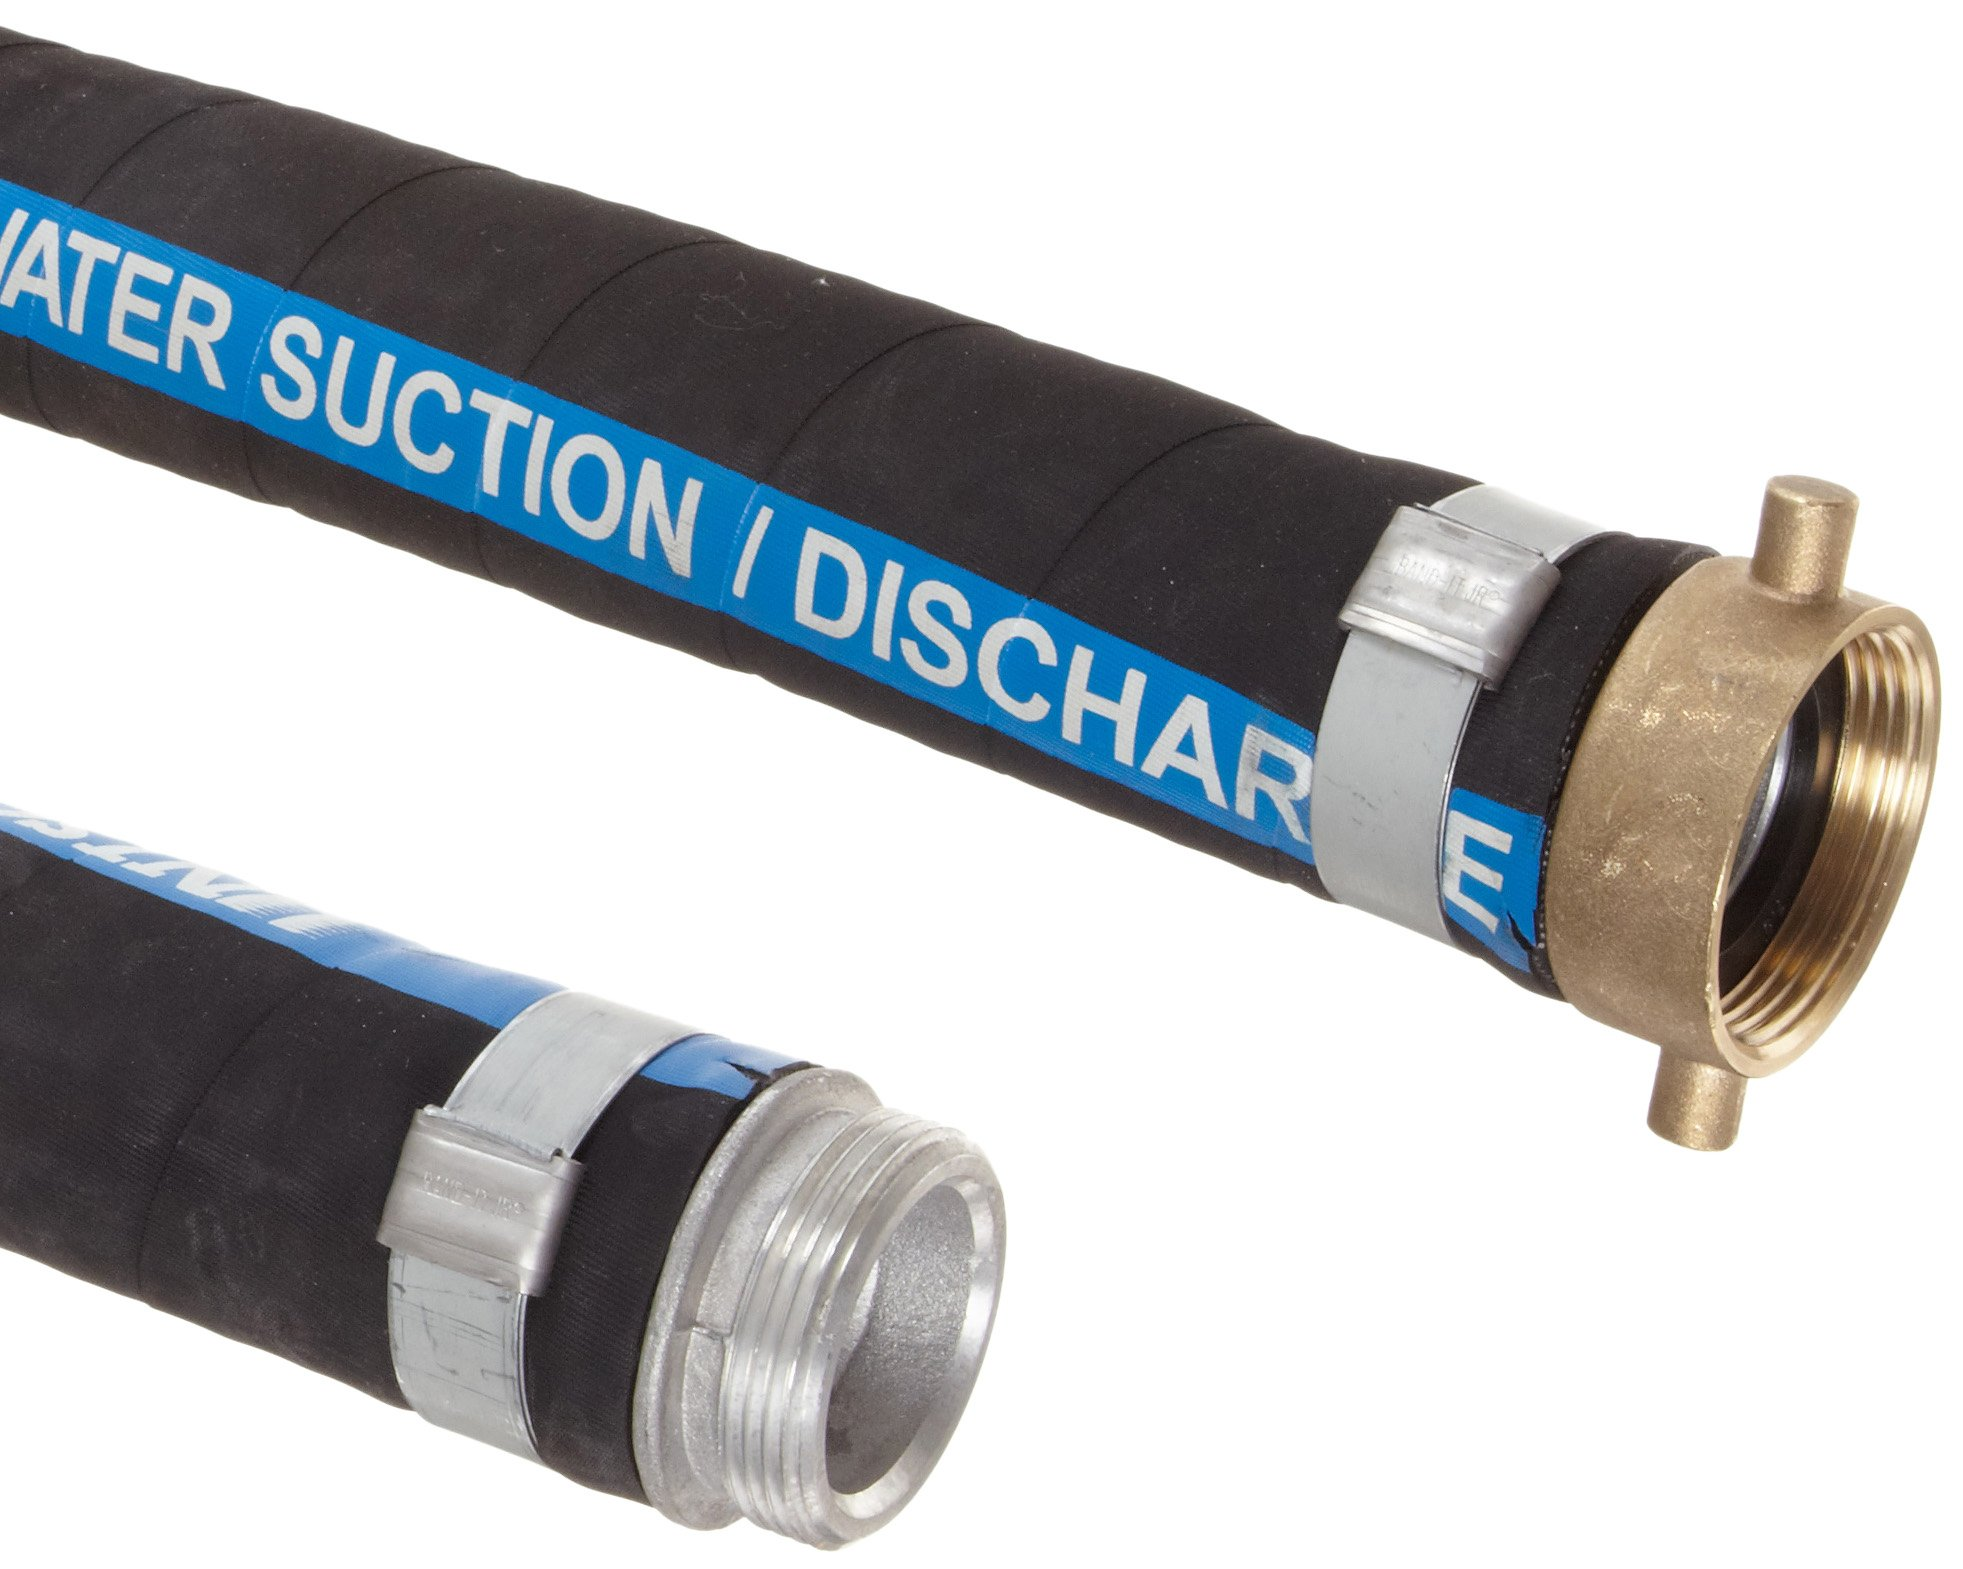 Unisource 2612 Black Rubber Suction/Discharge Hose Assembly, 1-1/2'' MPT x NPSM Female Swivel Connection, 150 PSI Maximum Pressure, 25' Length, 1-1/2'' ID